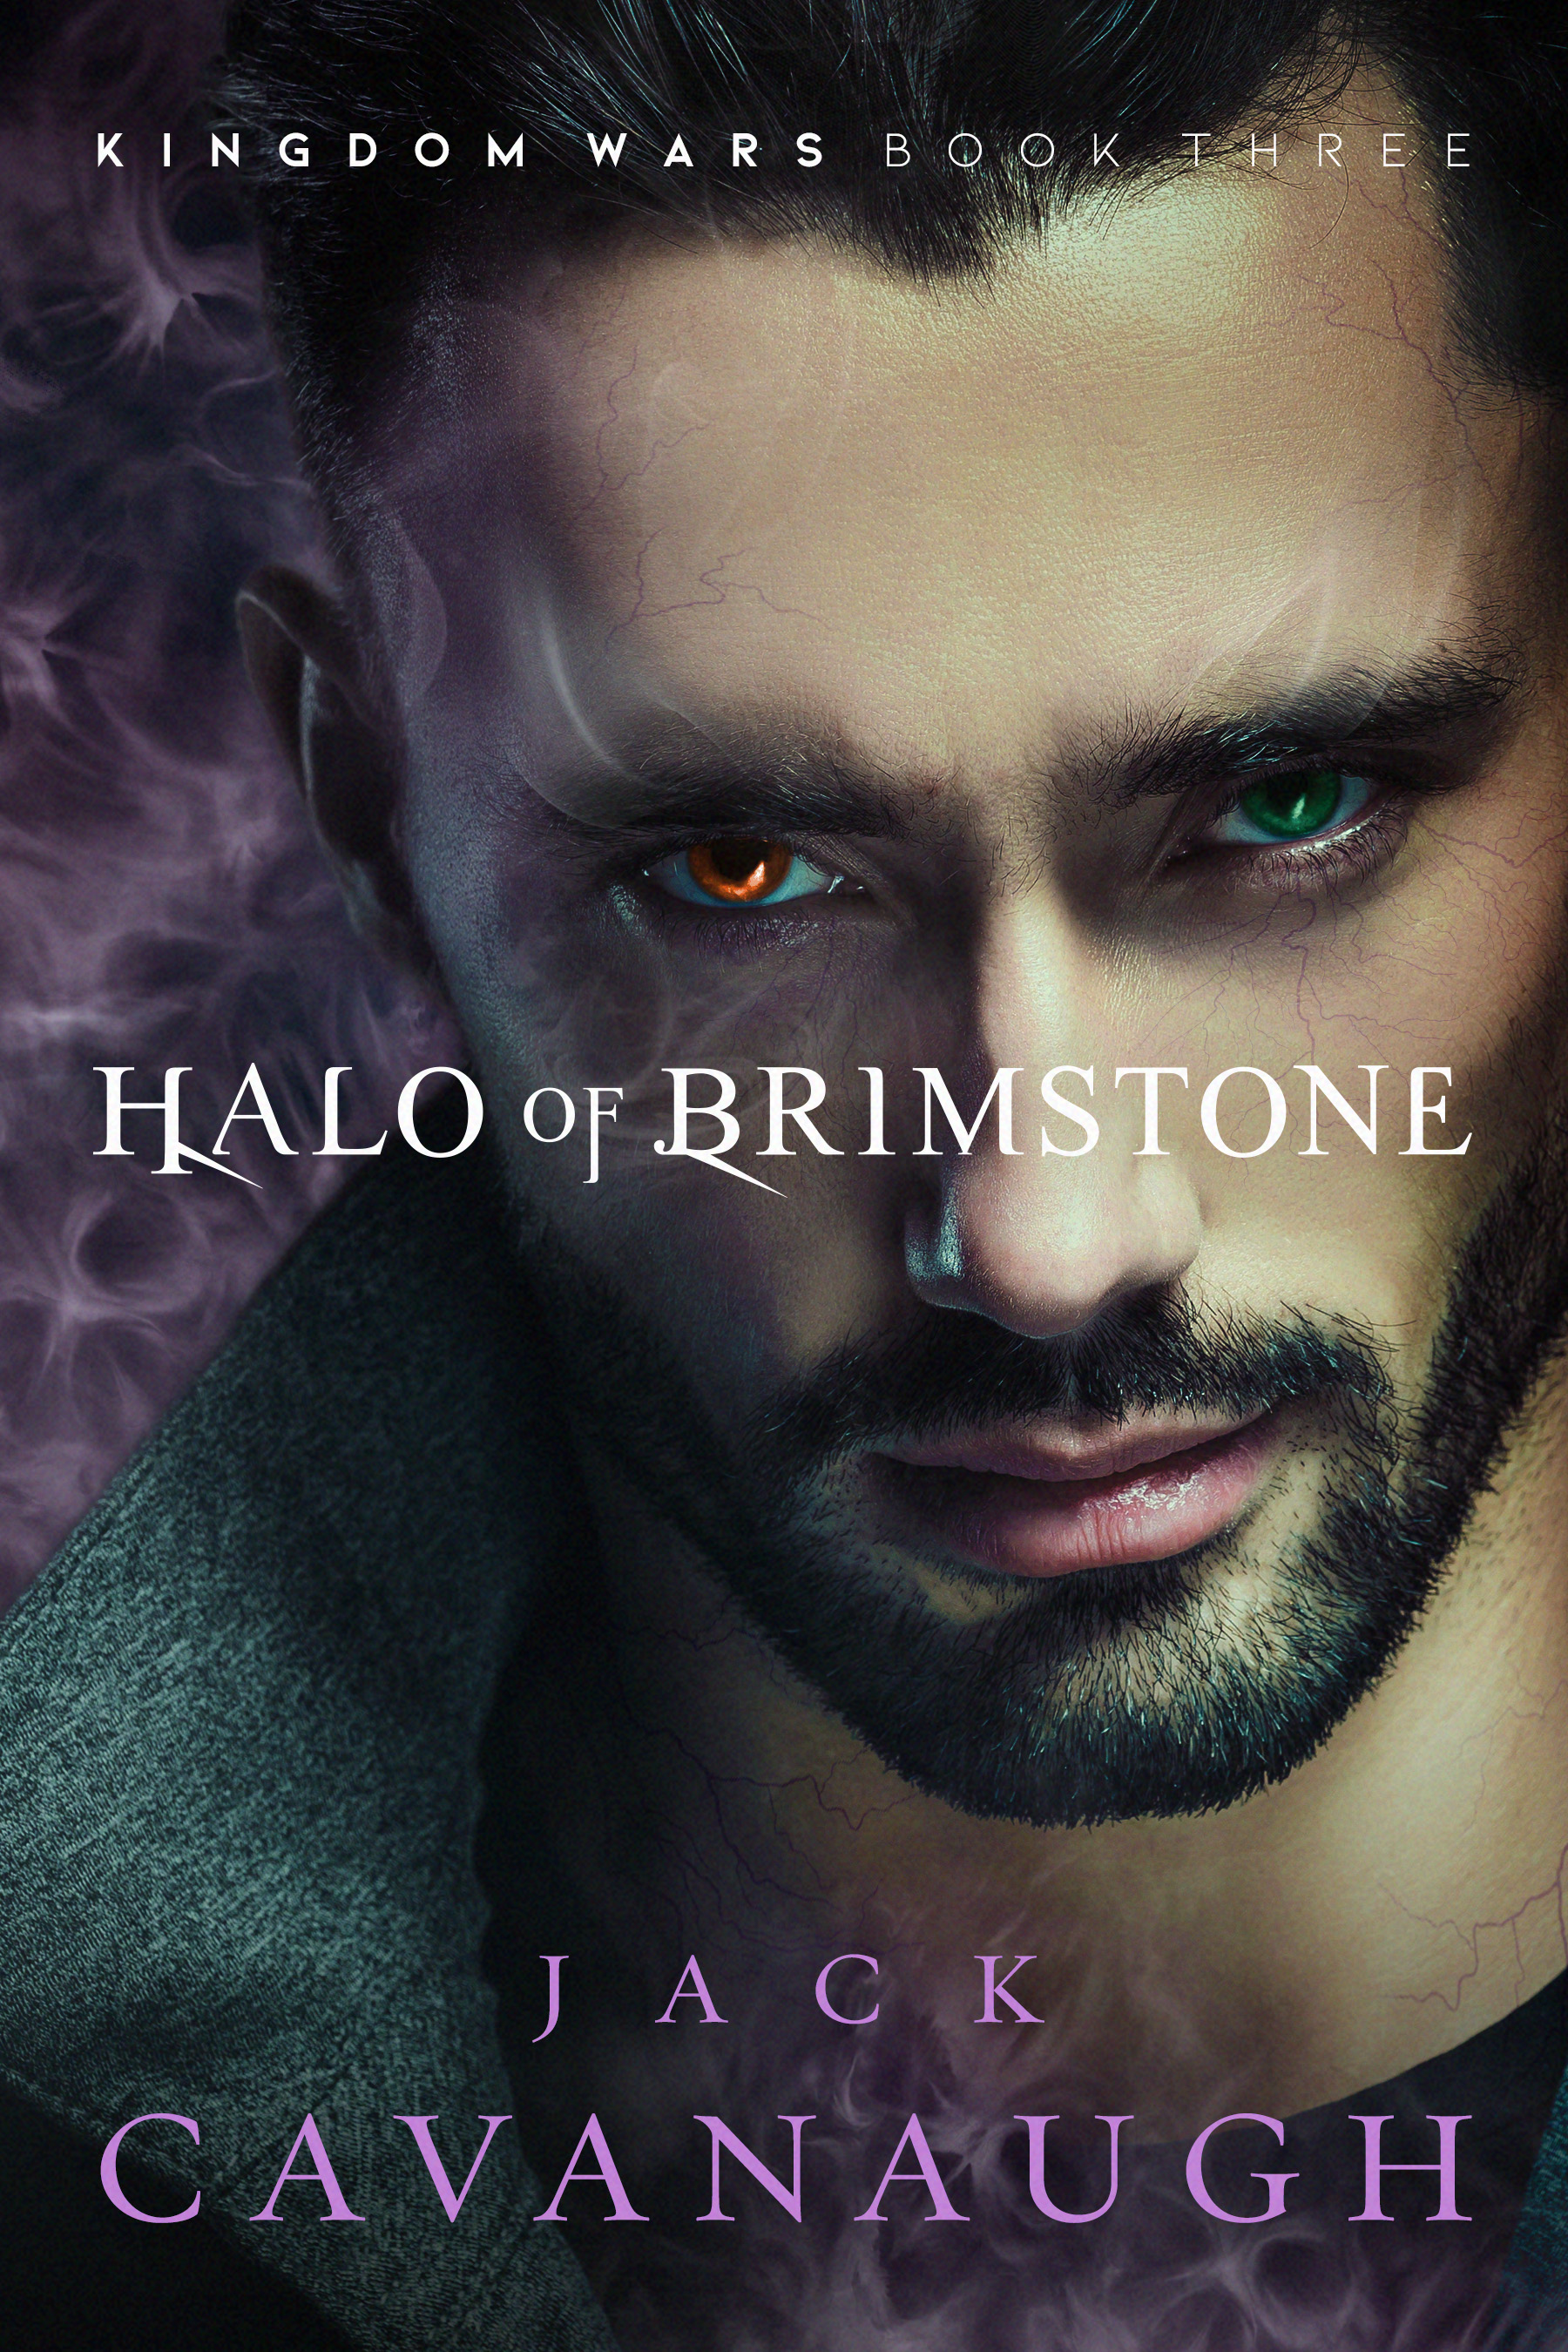 Halo of Brimstone